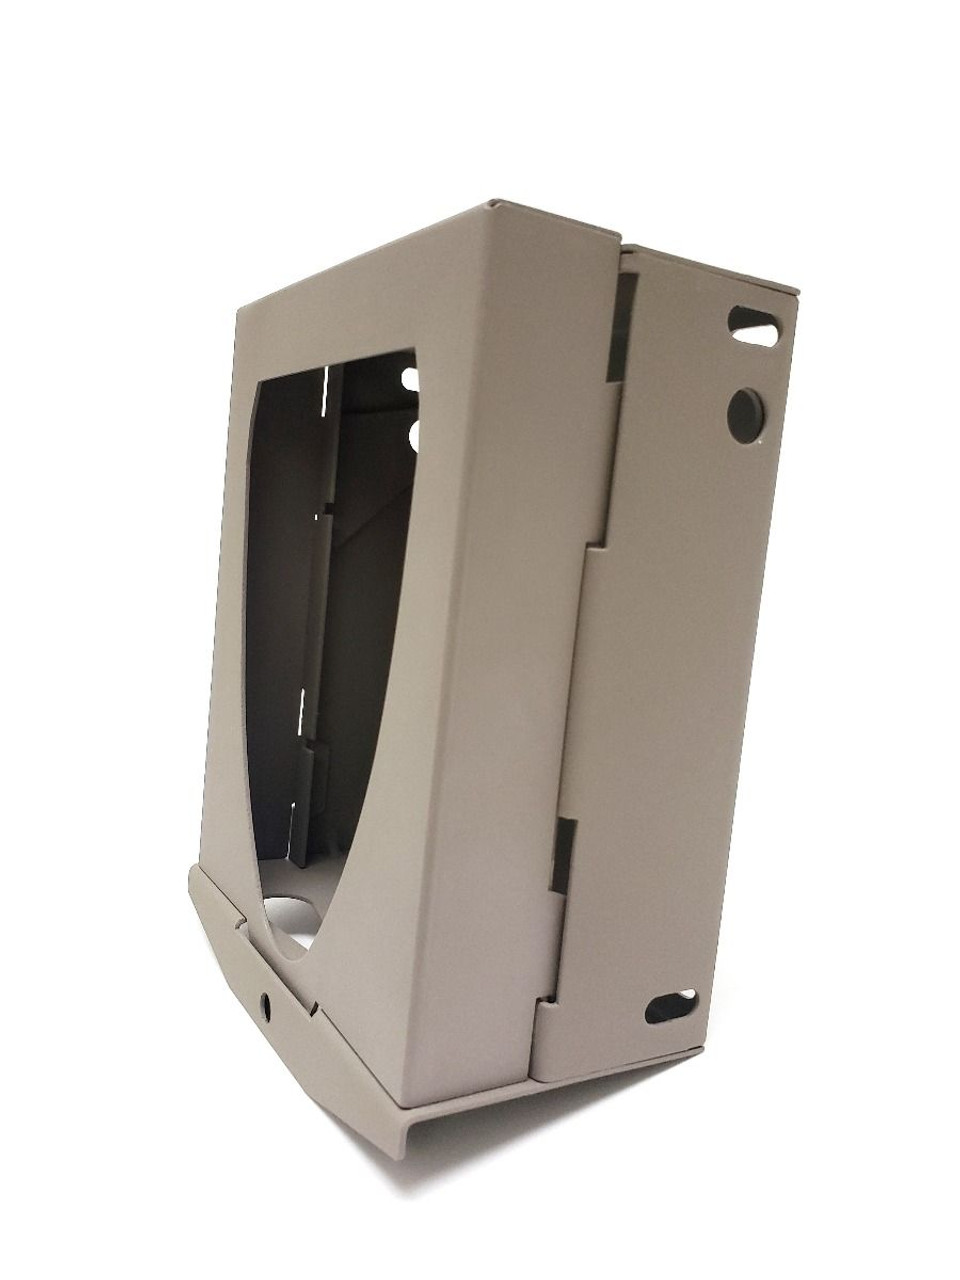 Spartan Ghost Camera Security Box